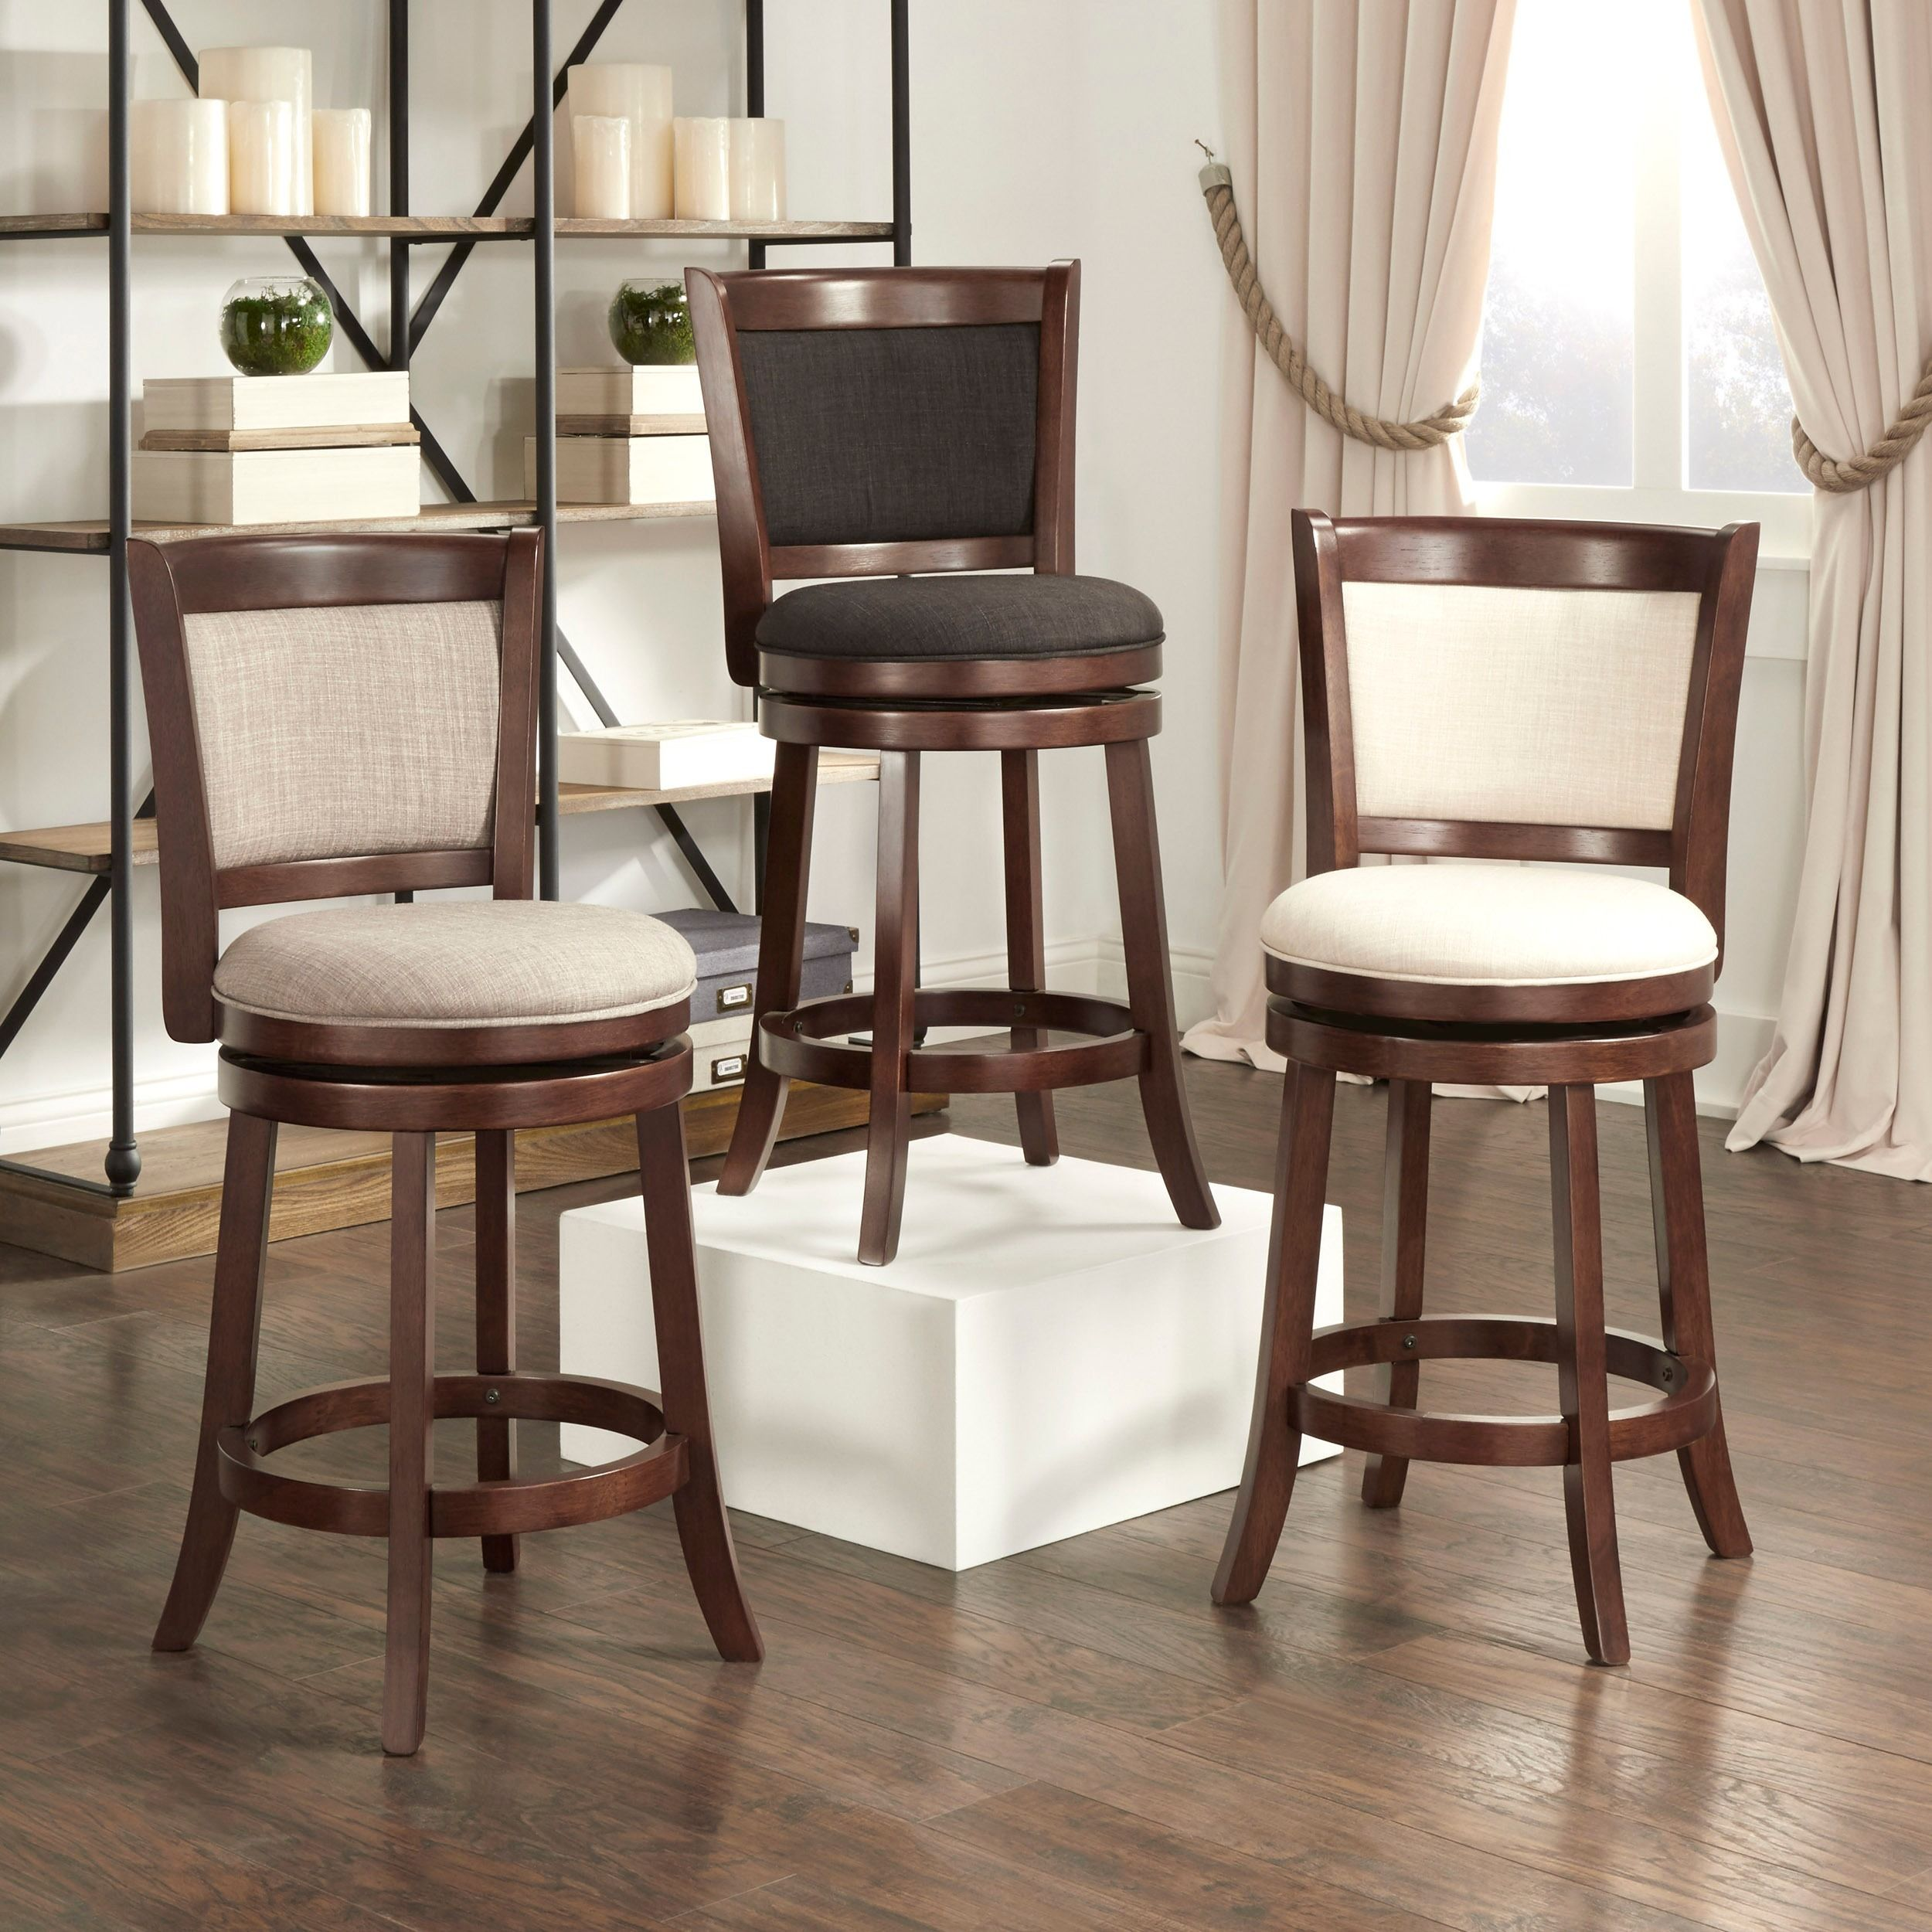 High Back Stools Verona Panel Back Linen Swivel 24 Inch High Back Counter